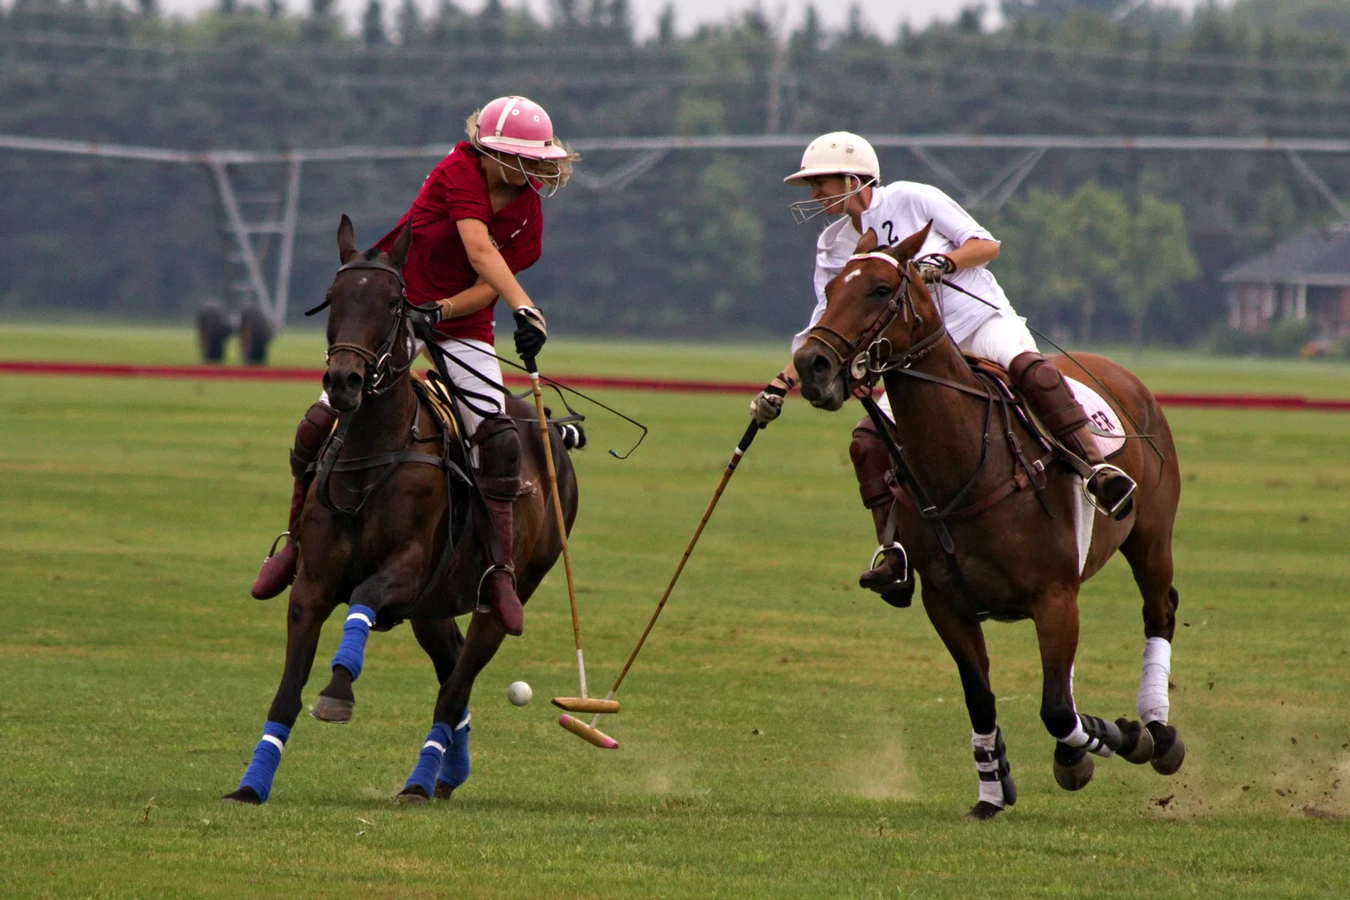 polo in the park vip tickets